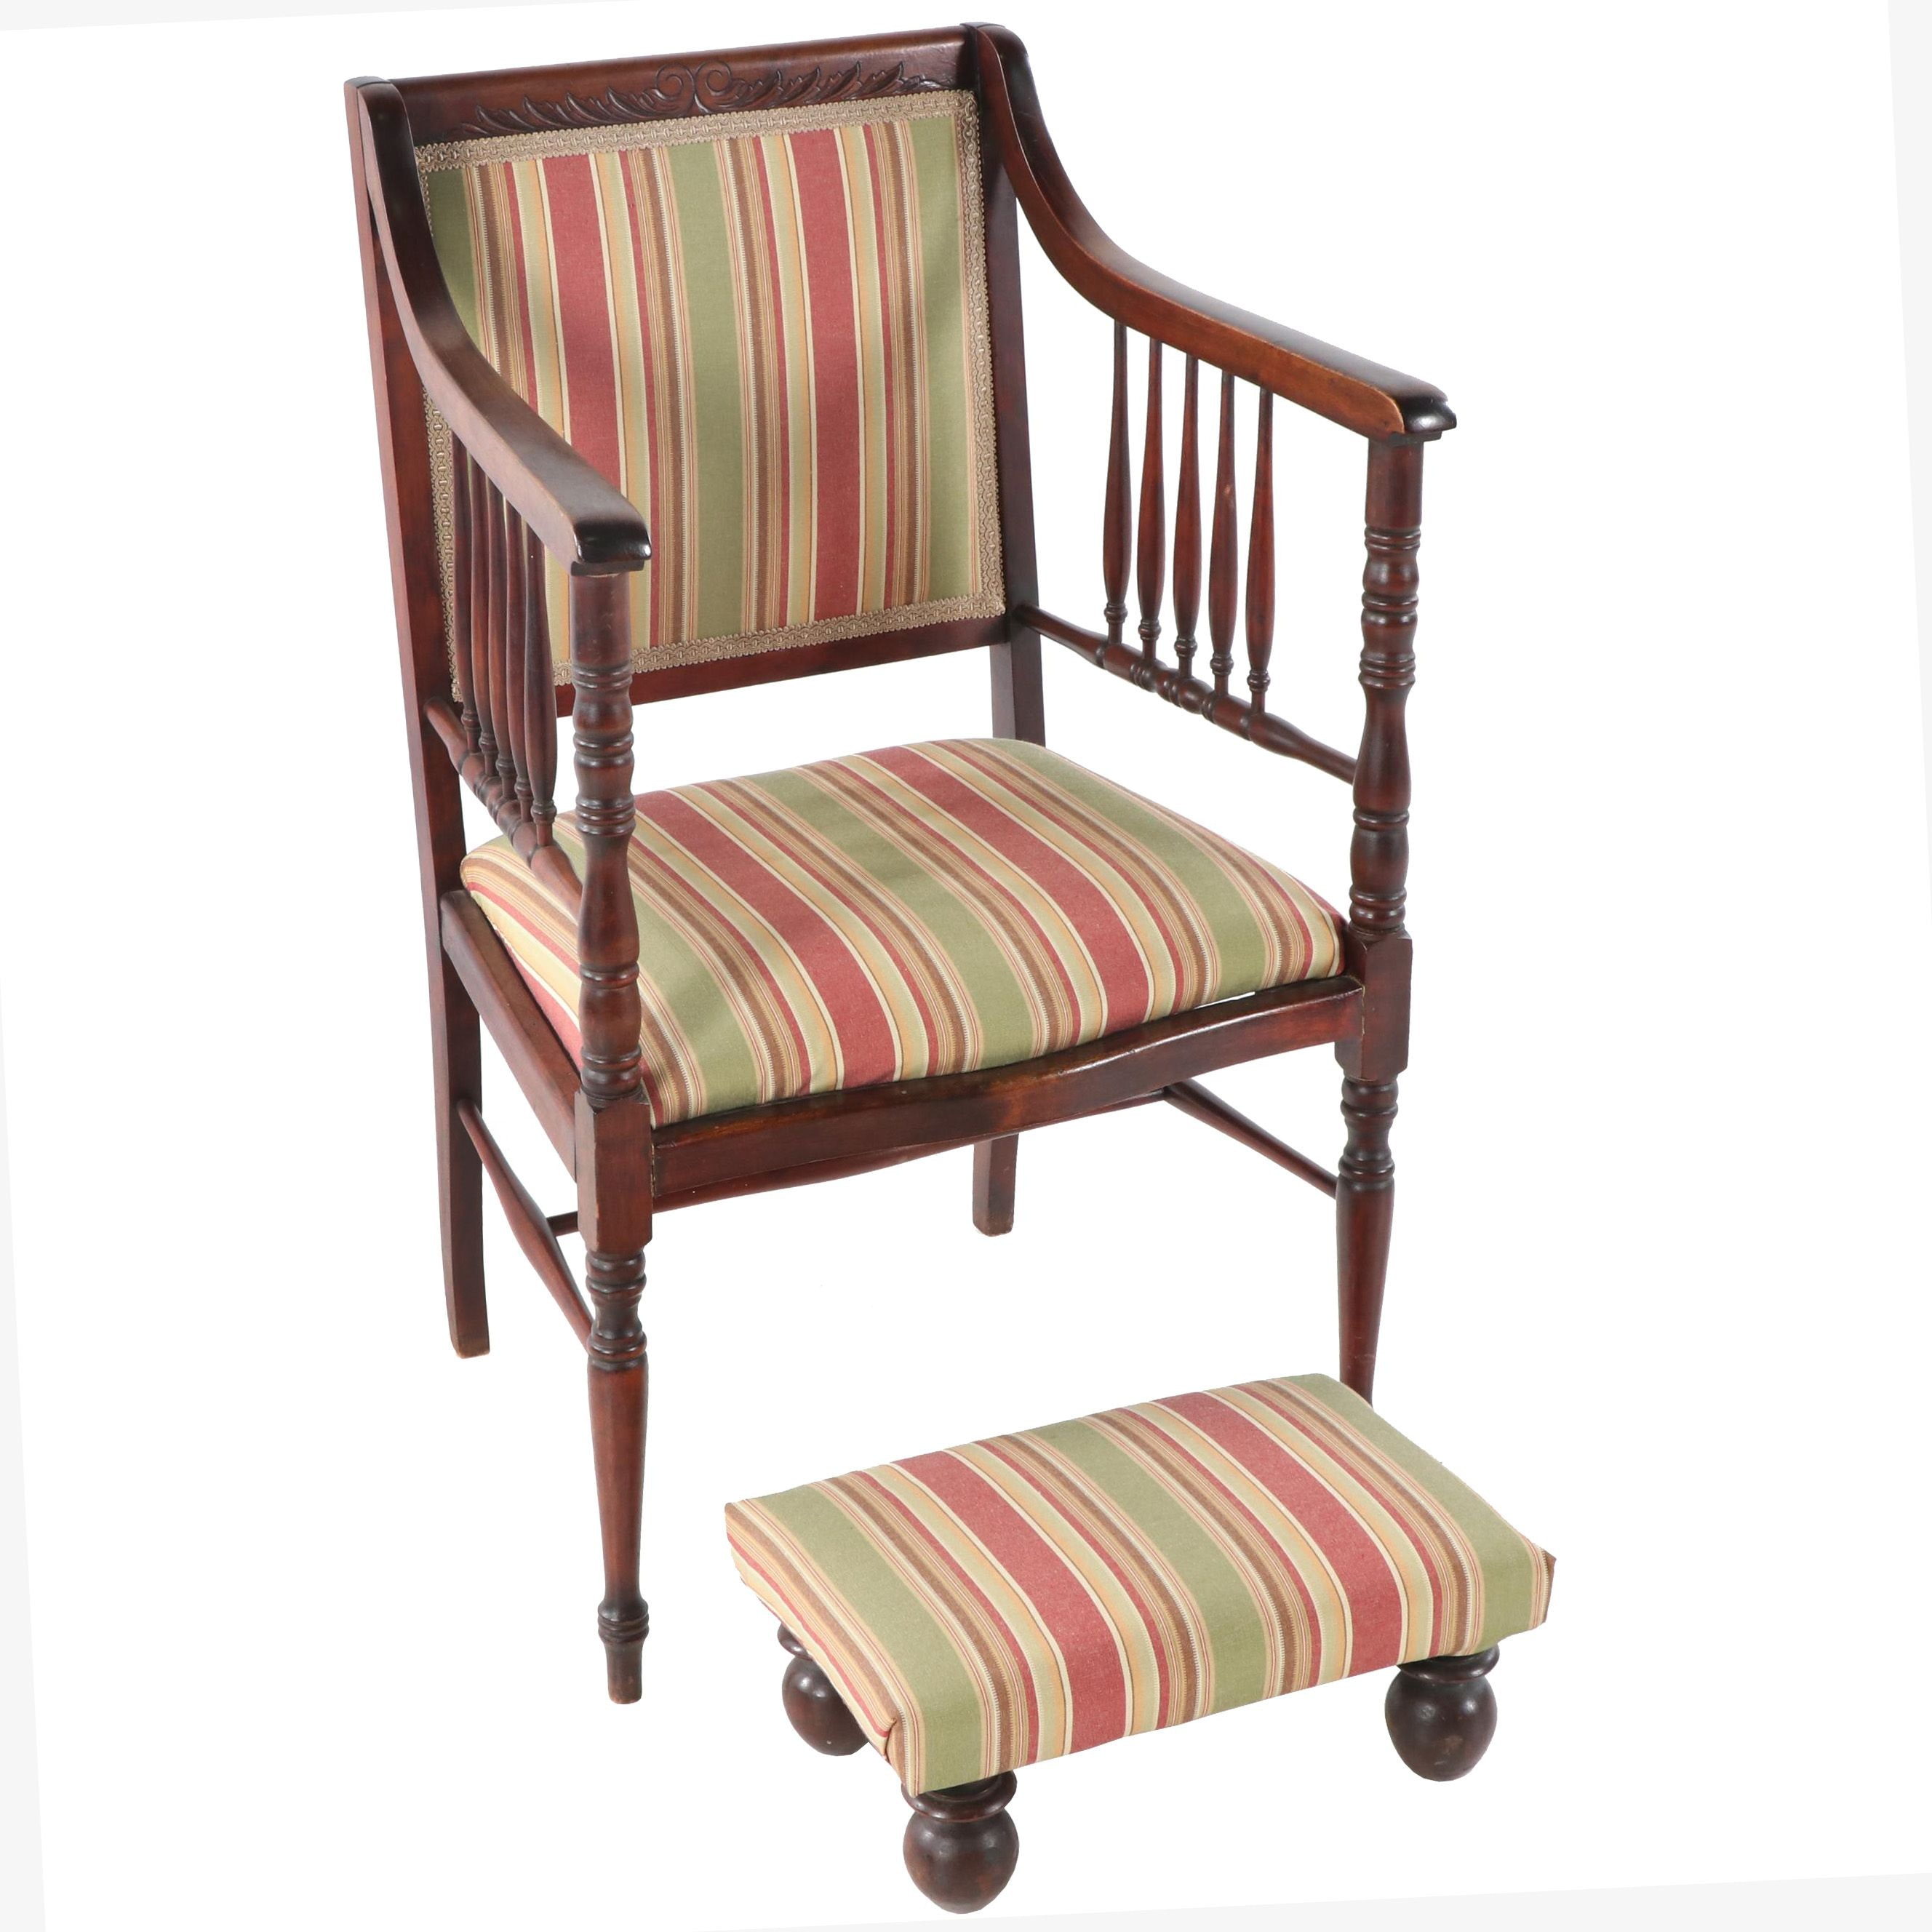 Federal Style Upholstered Armchair and Footstool, Mid-20th Century